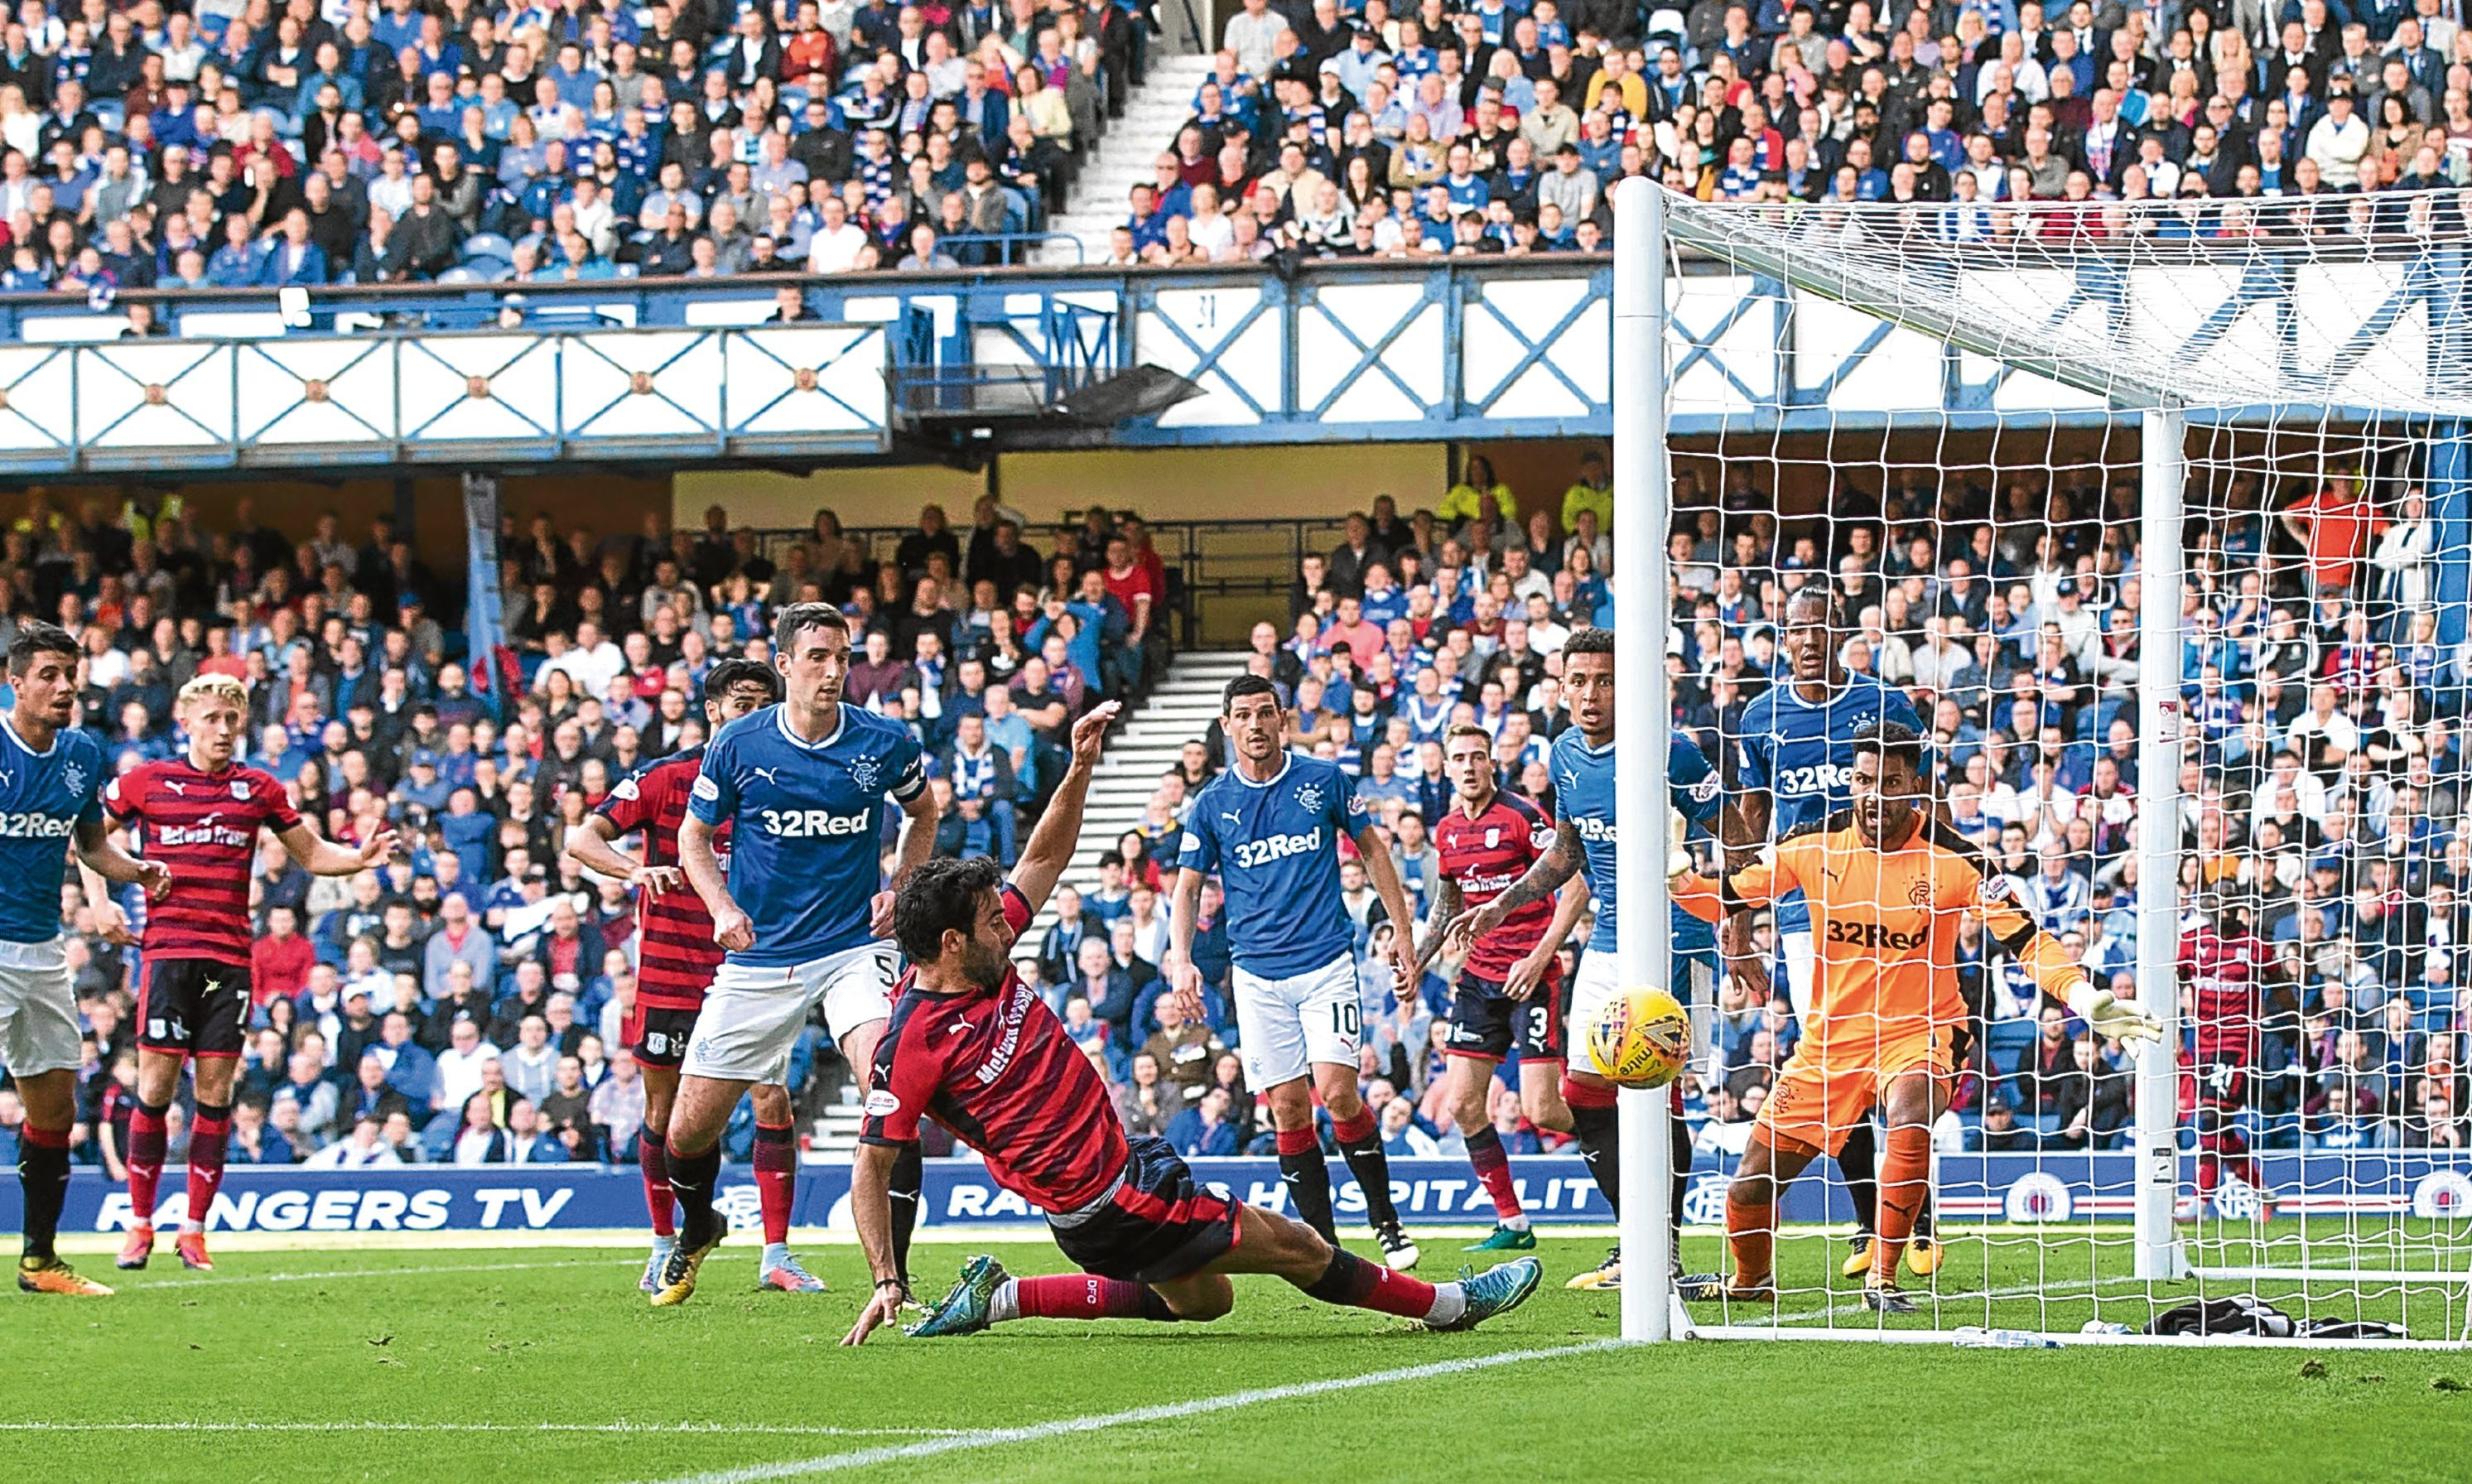 Dundee's Sofien Moussa is inches away from levelling the scores early in the second half against rangers